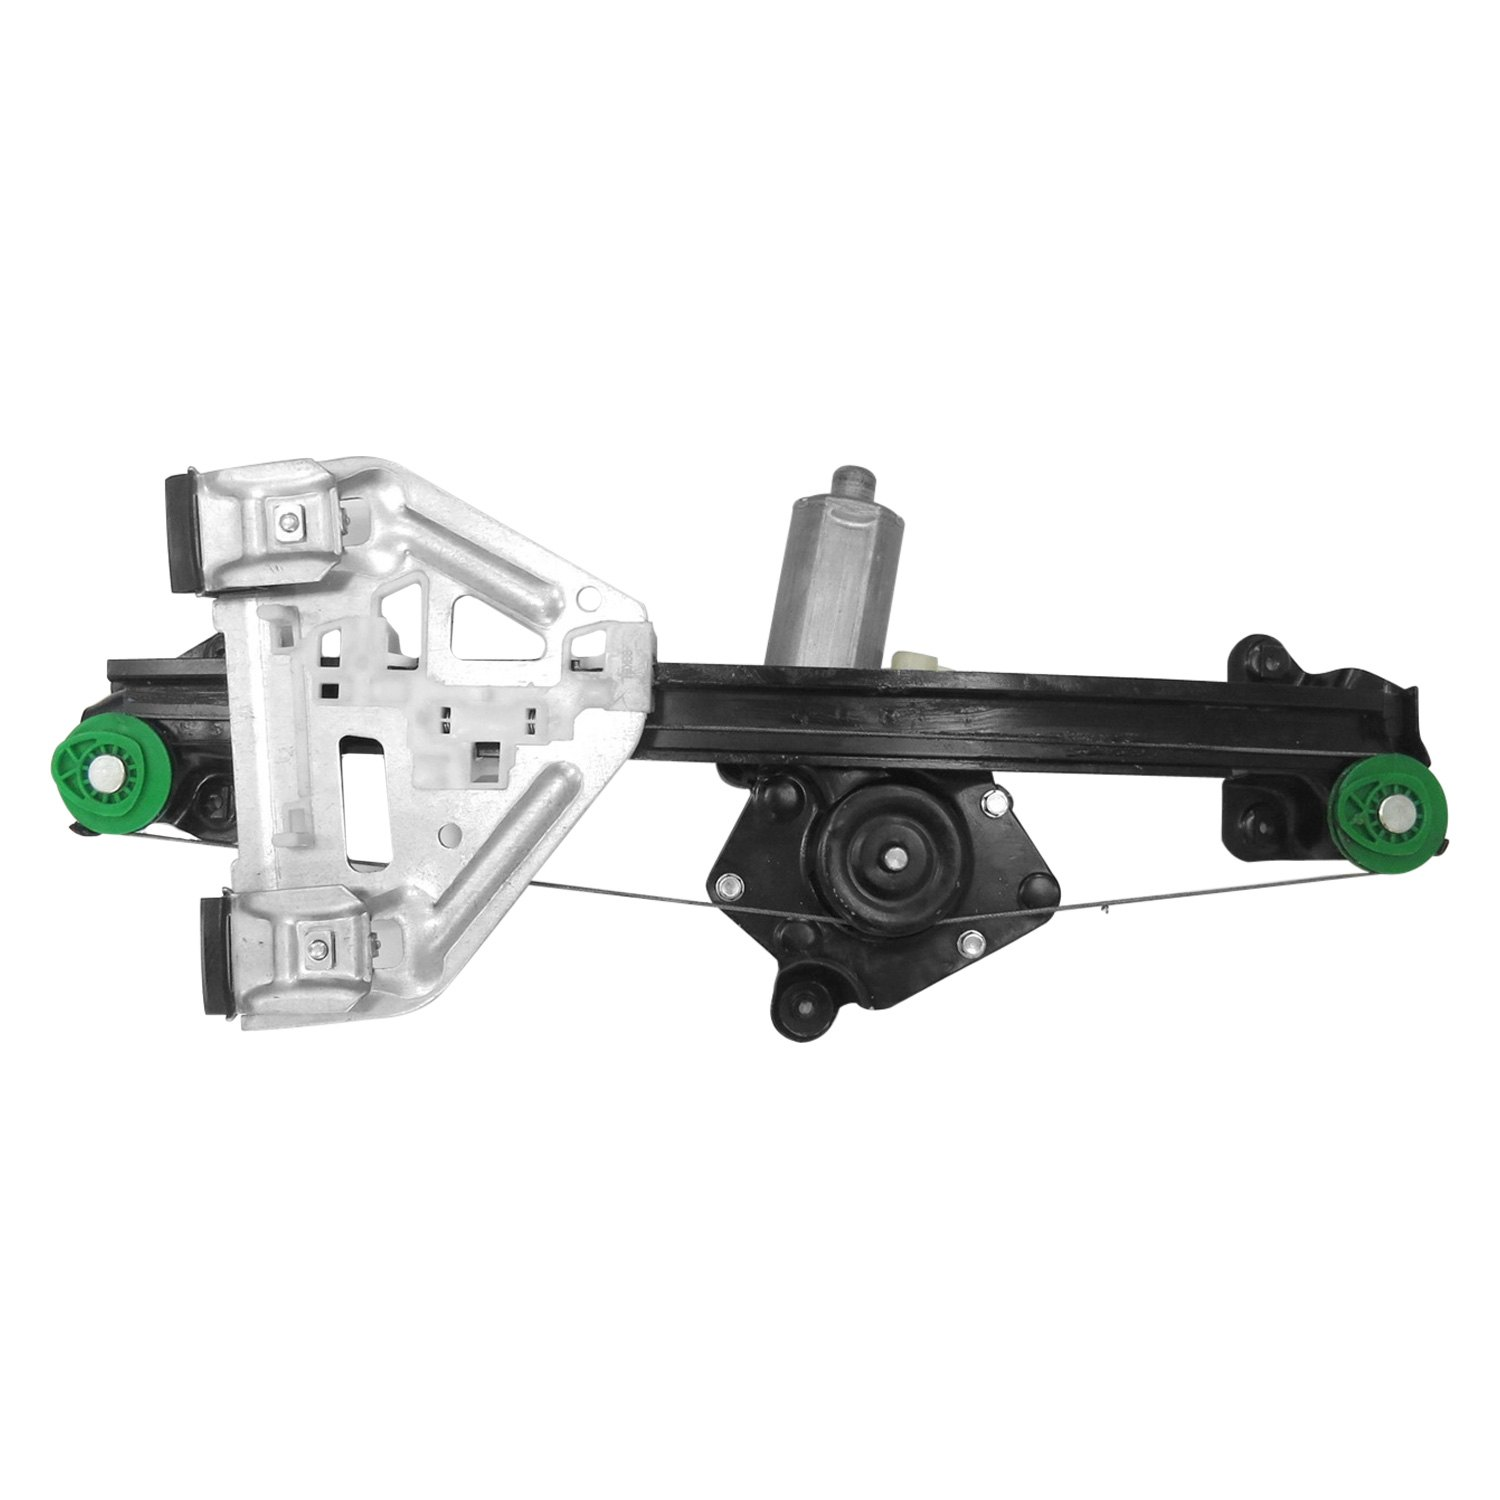 Tyc cadillac cts cts v 2004 rear power window motor for 03 cadillac deville window regulator